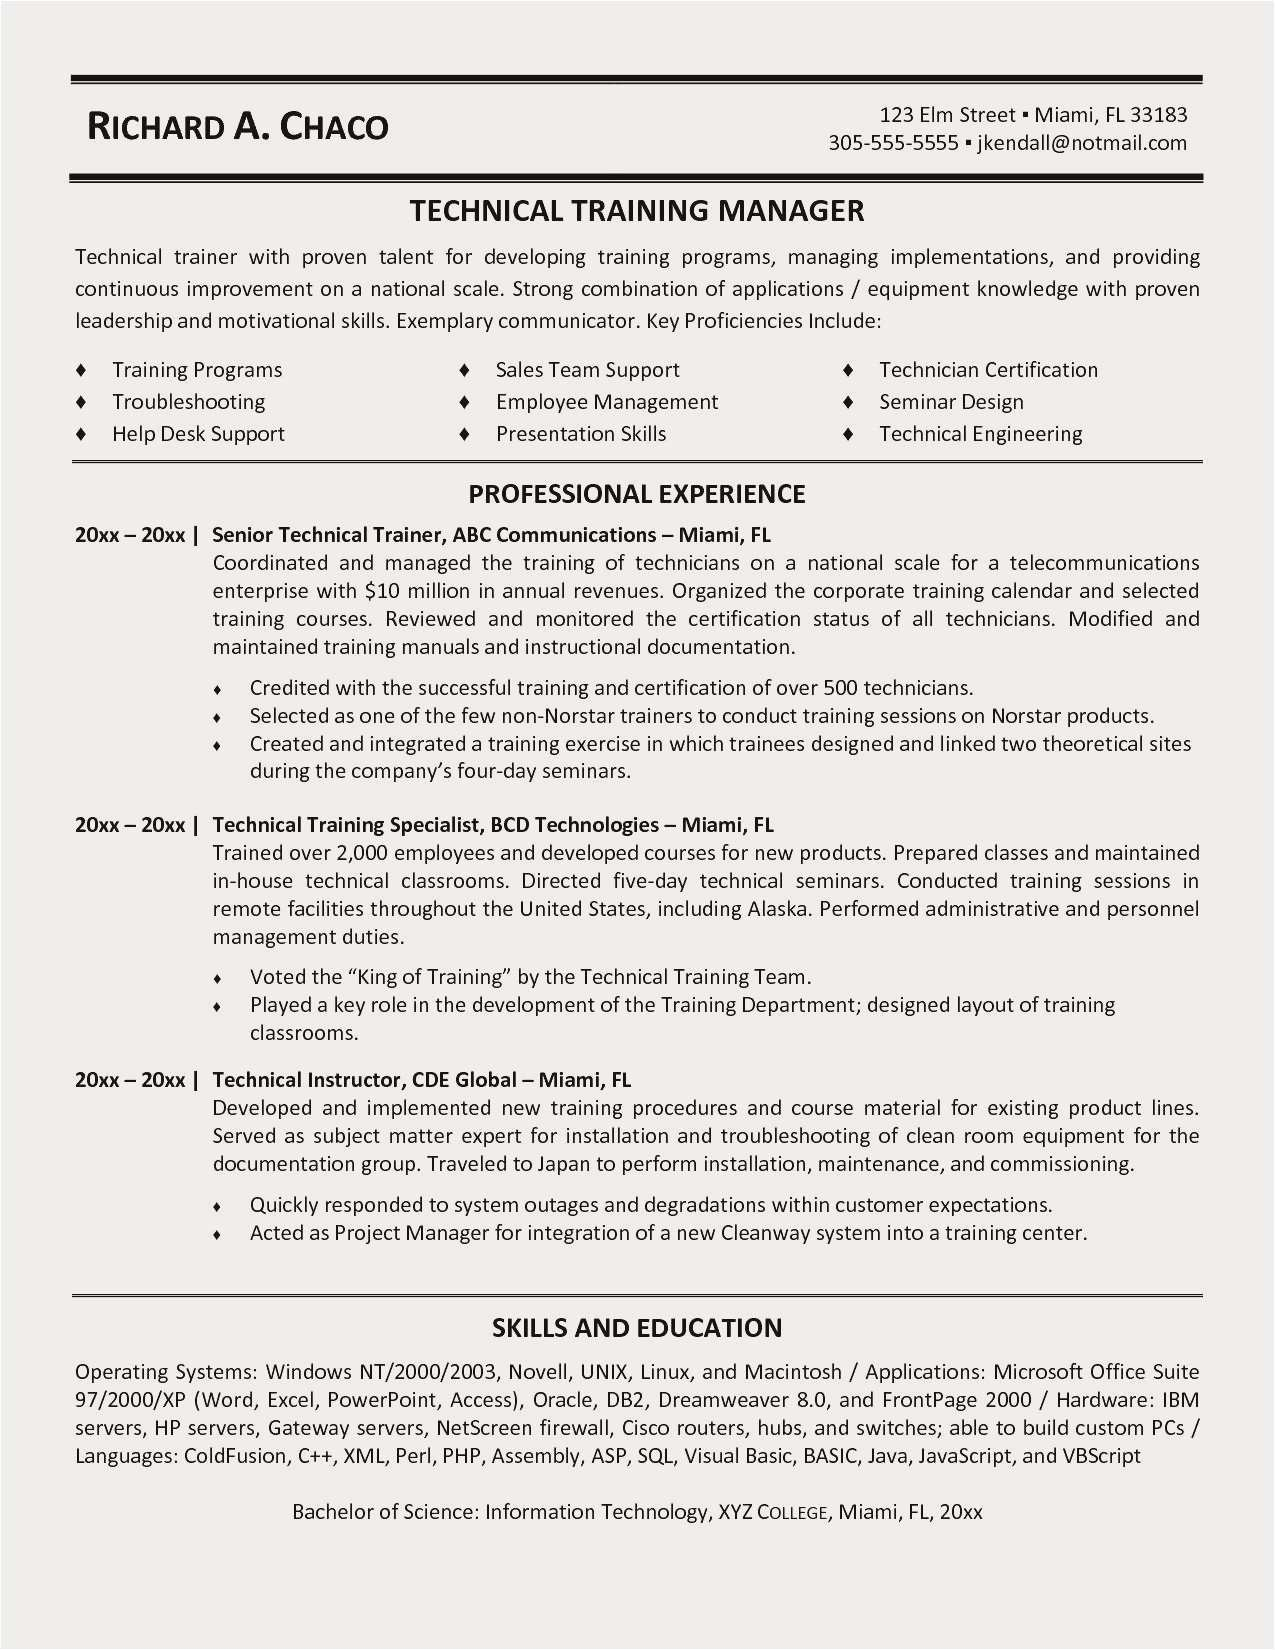 Office Equipment Skills for Resume - What to Put for Skills A Resume format How to Write A Resume